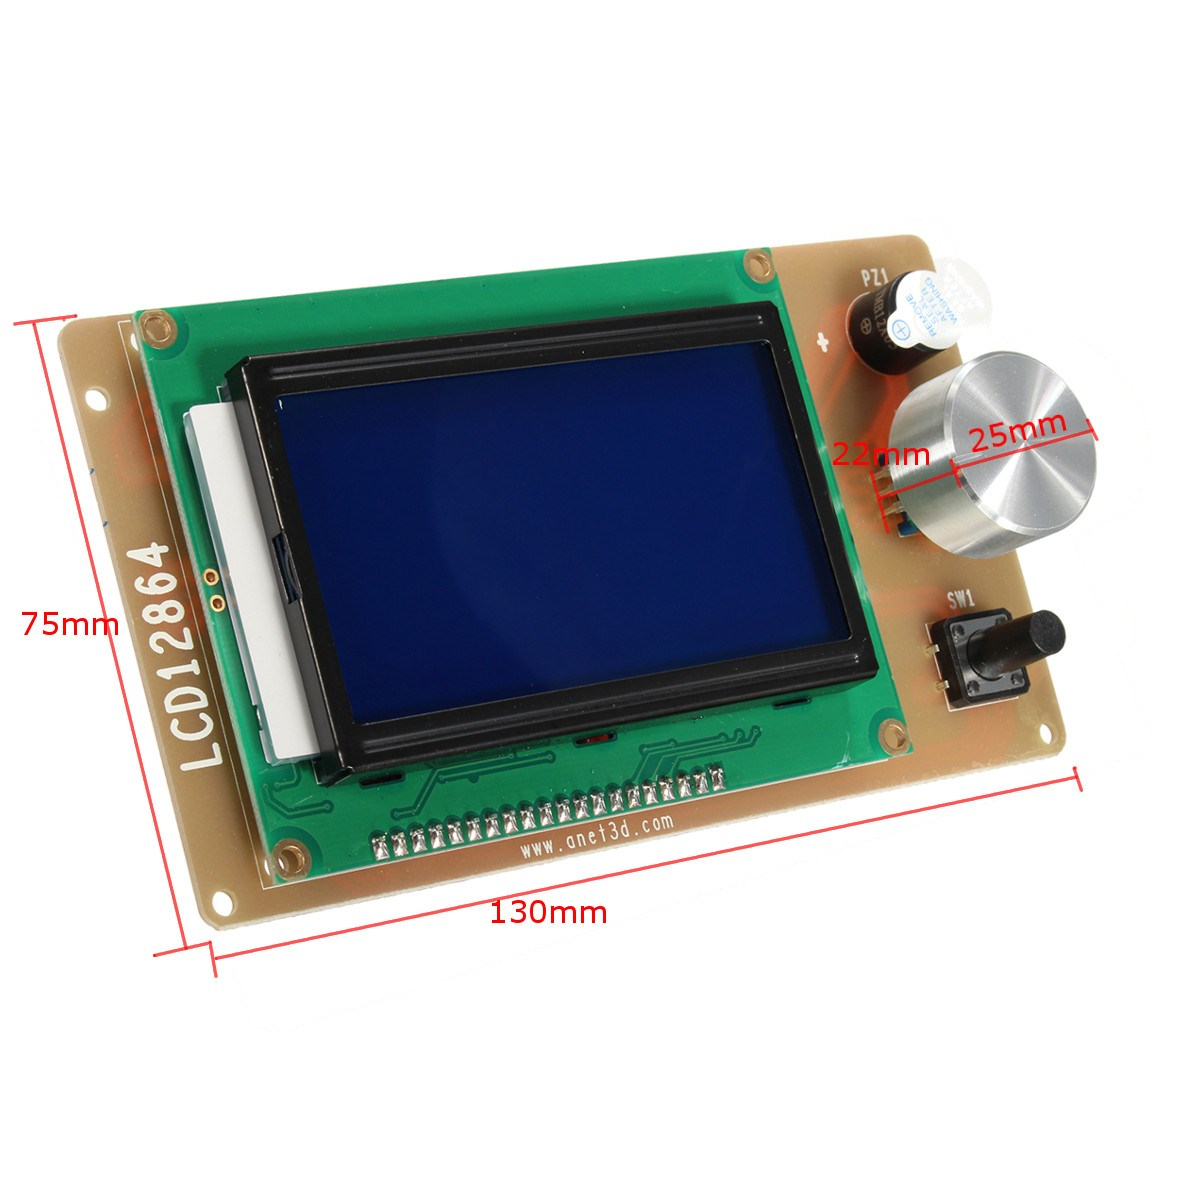 1Pc 3D printer RAMPS1.4 lcd 12864 control Lcd Module adjustable Large screen 12864 LCD 3 (inches) Motherboard integrated SD card1Pc 3D printer RAMPS1.4 lcd 12864 control Lcd Module adjustable Large screen 12864 LCD 3 (inches) Motherboard integrated SD card